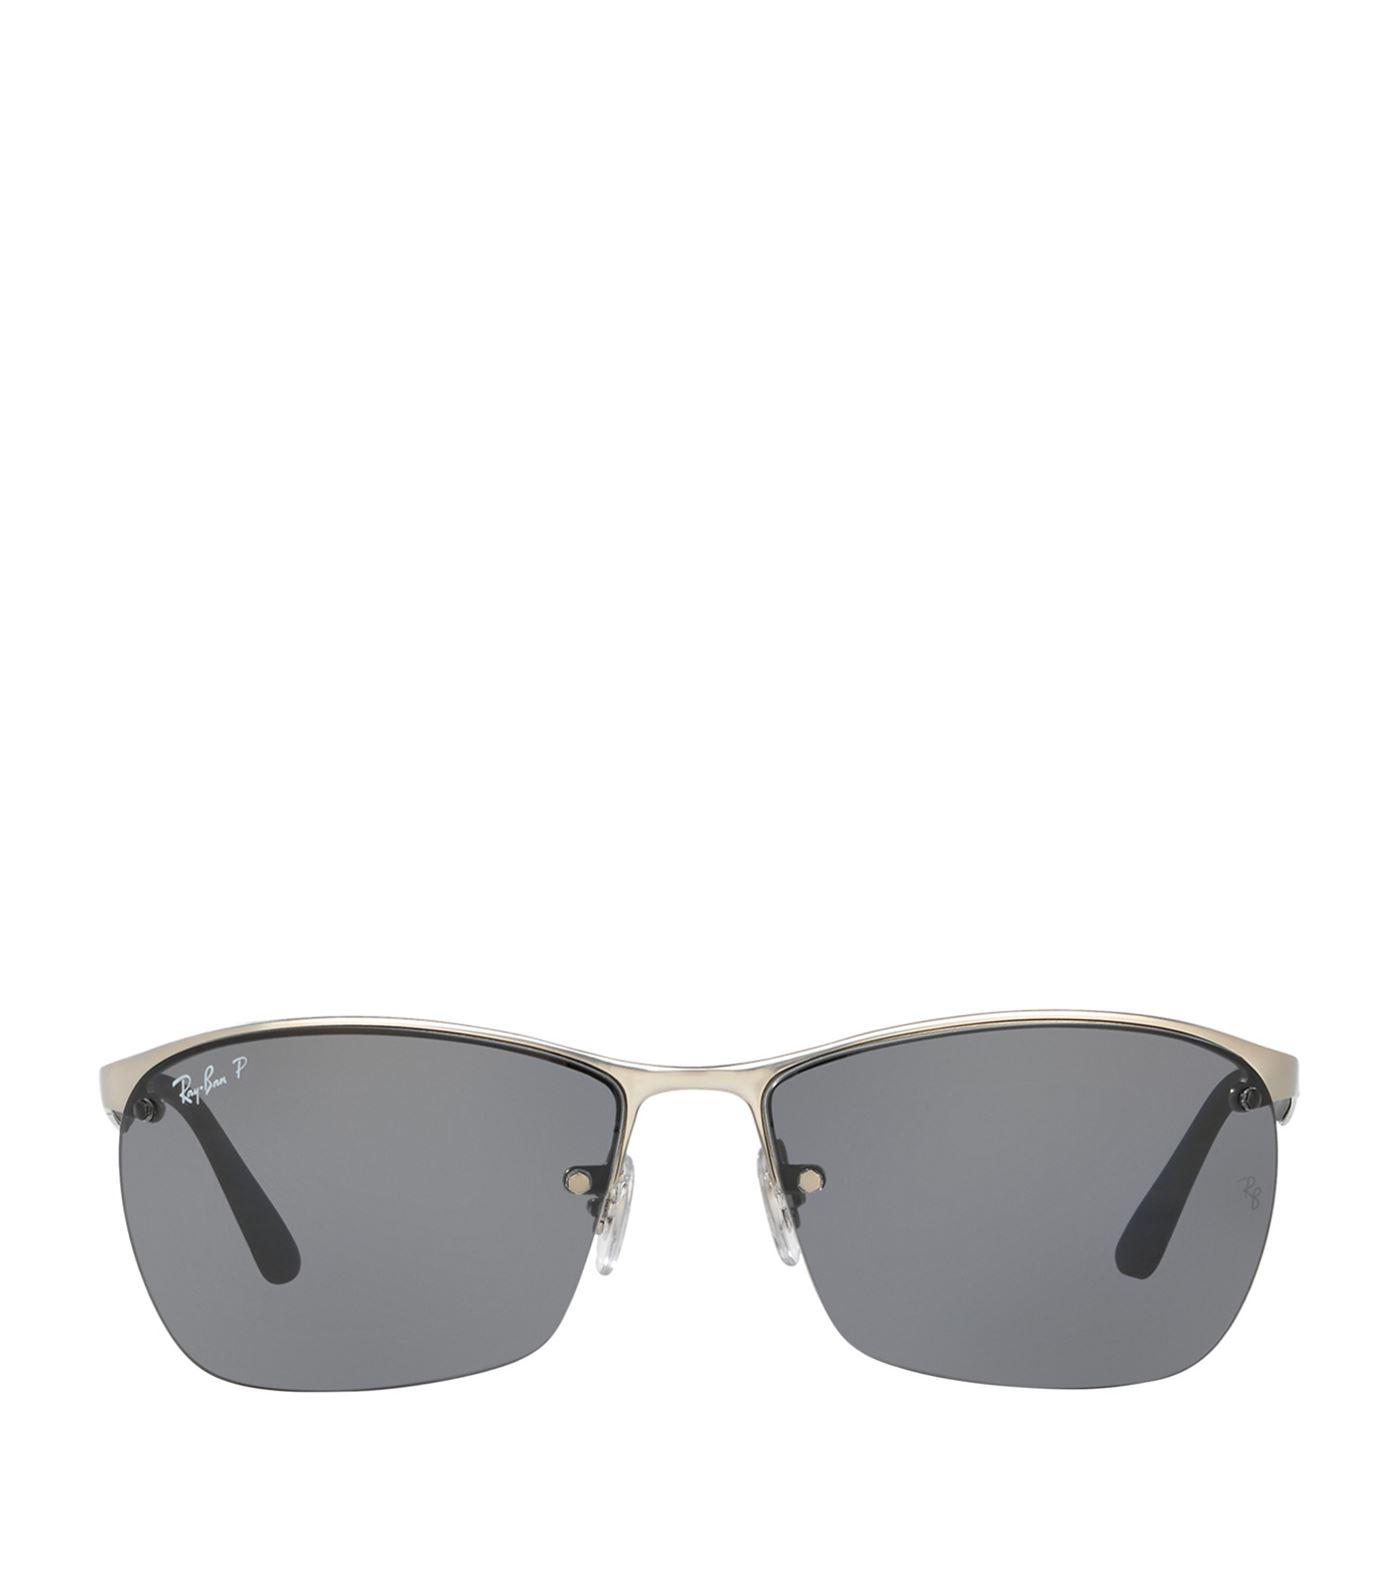 Ray-Ban Half-frame Sunglasses in Metallic - Lyst